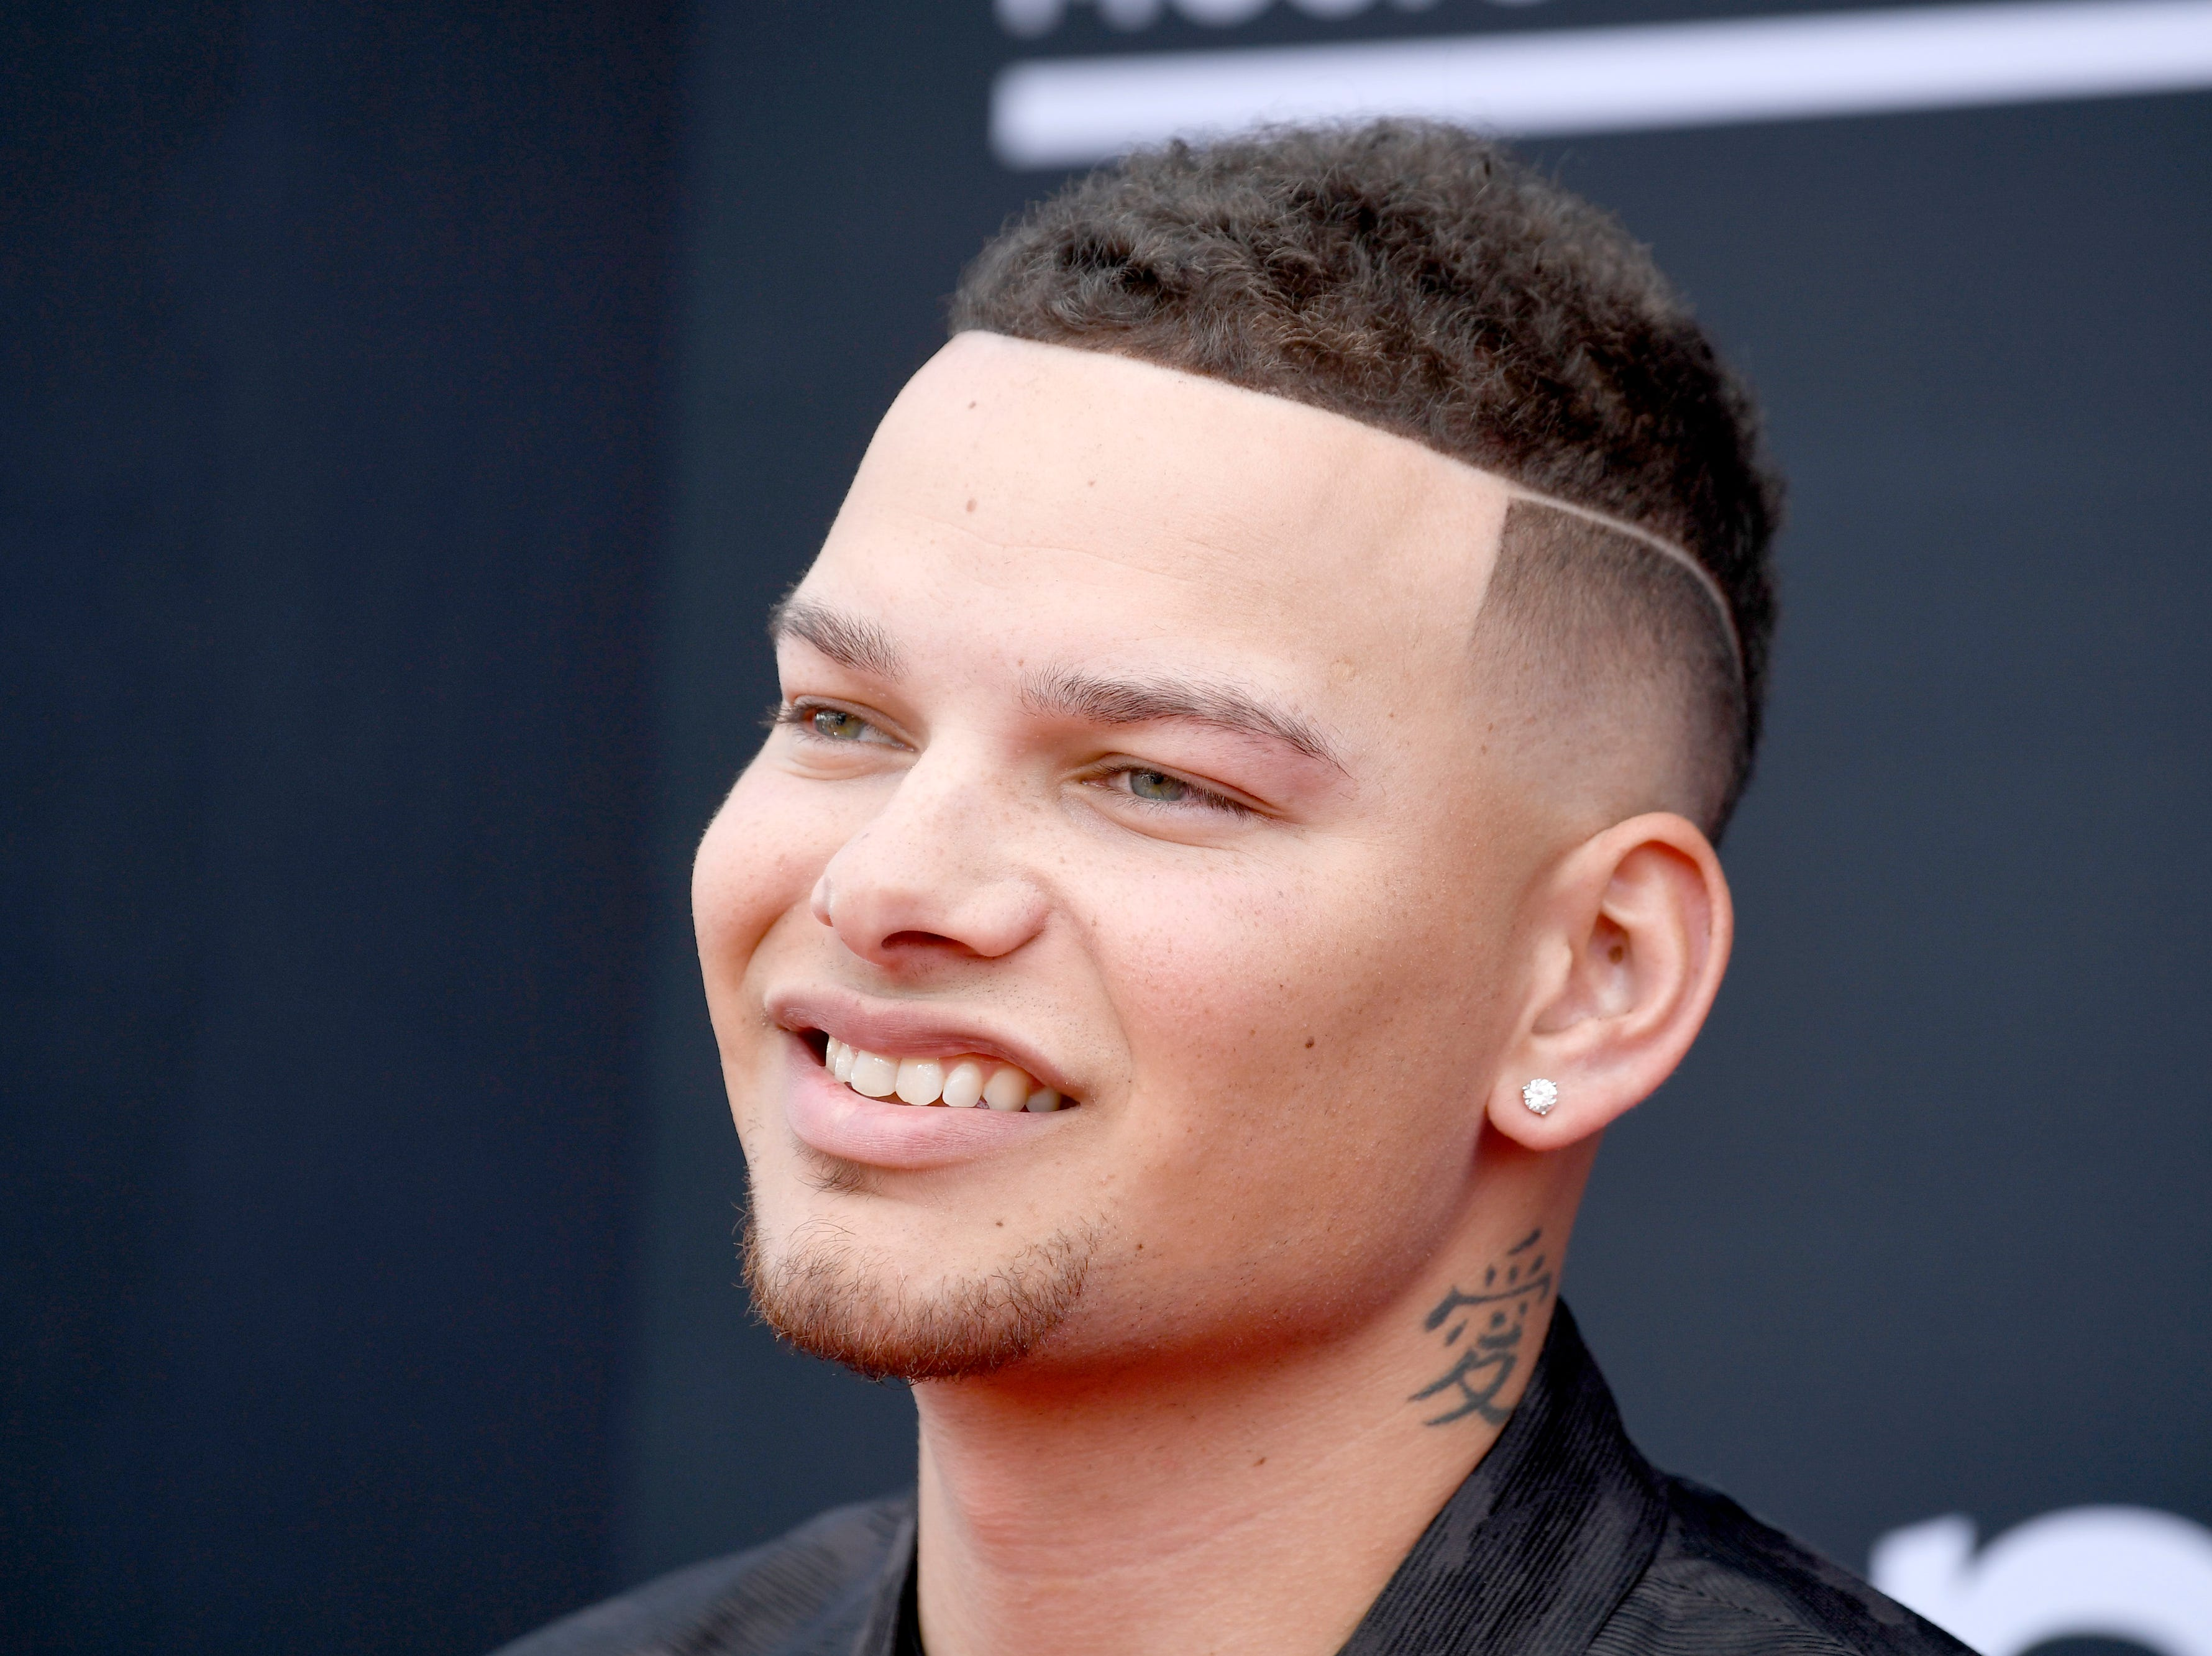 Kane Brown attends the 2019 Billboard Music Awards at MGM Grand Garden Arena on May 01, 2019 in Las Vegas, Nevada.